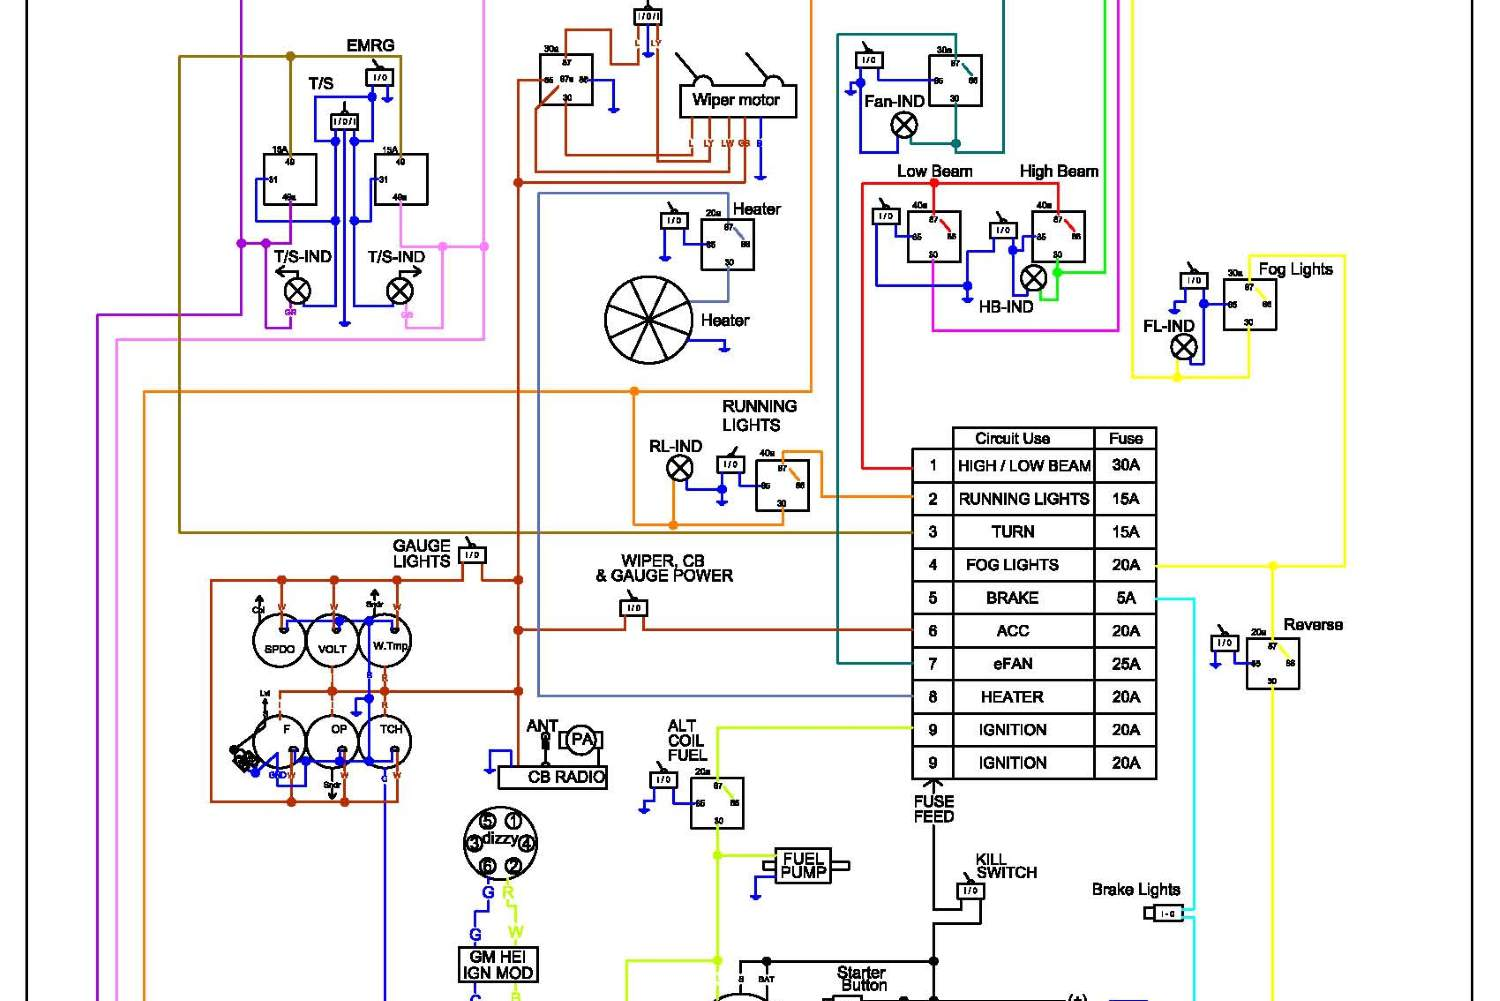 ... Gas Gauge Problem. electrical wiring diagram